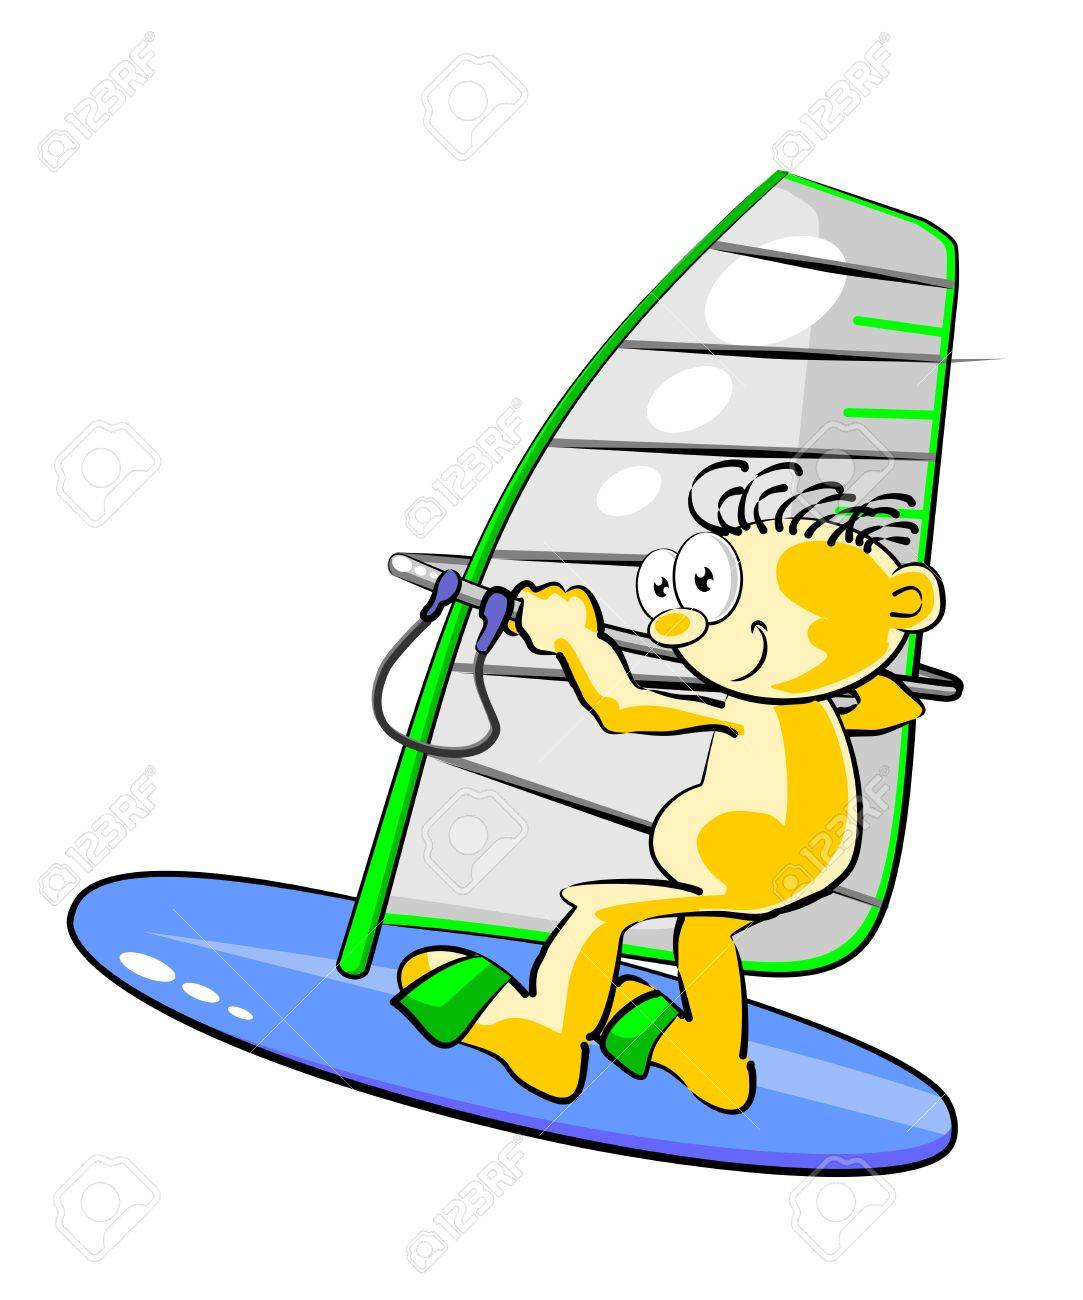 Conceptual illustration about windsurfing, vacation and enjoy life Stock Vector - 21458296